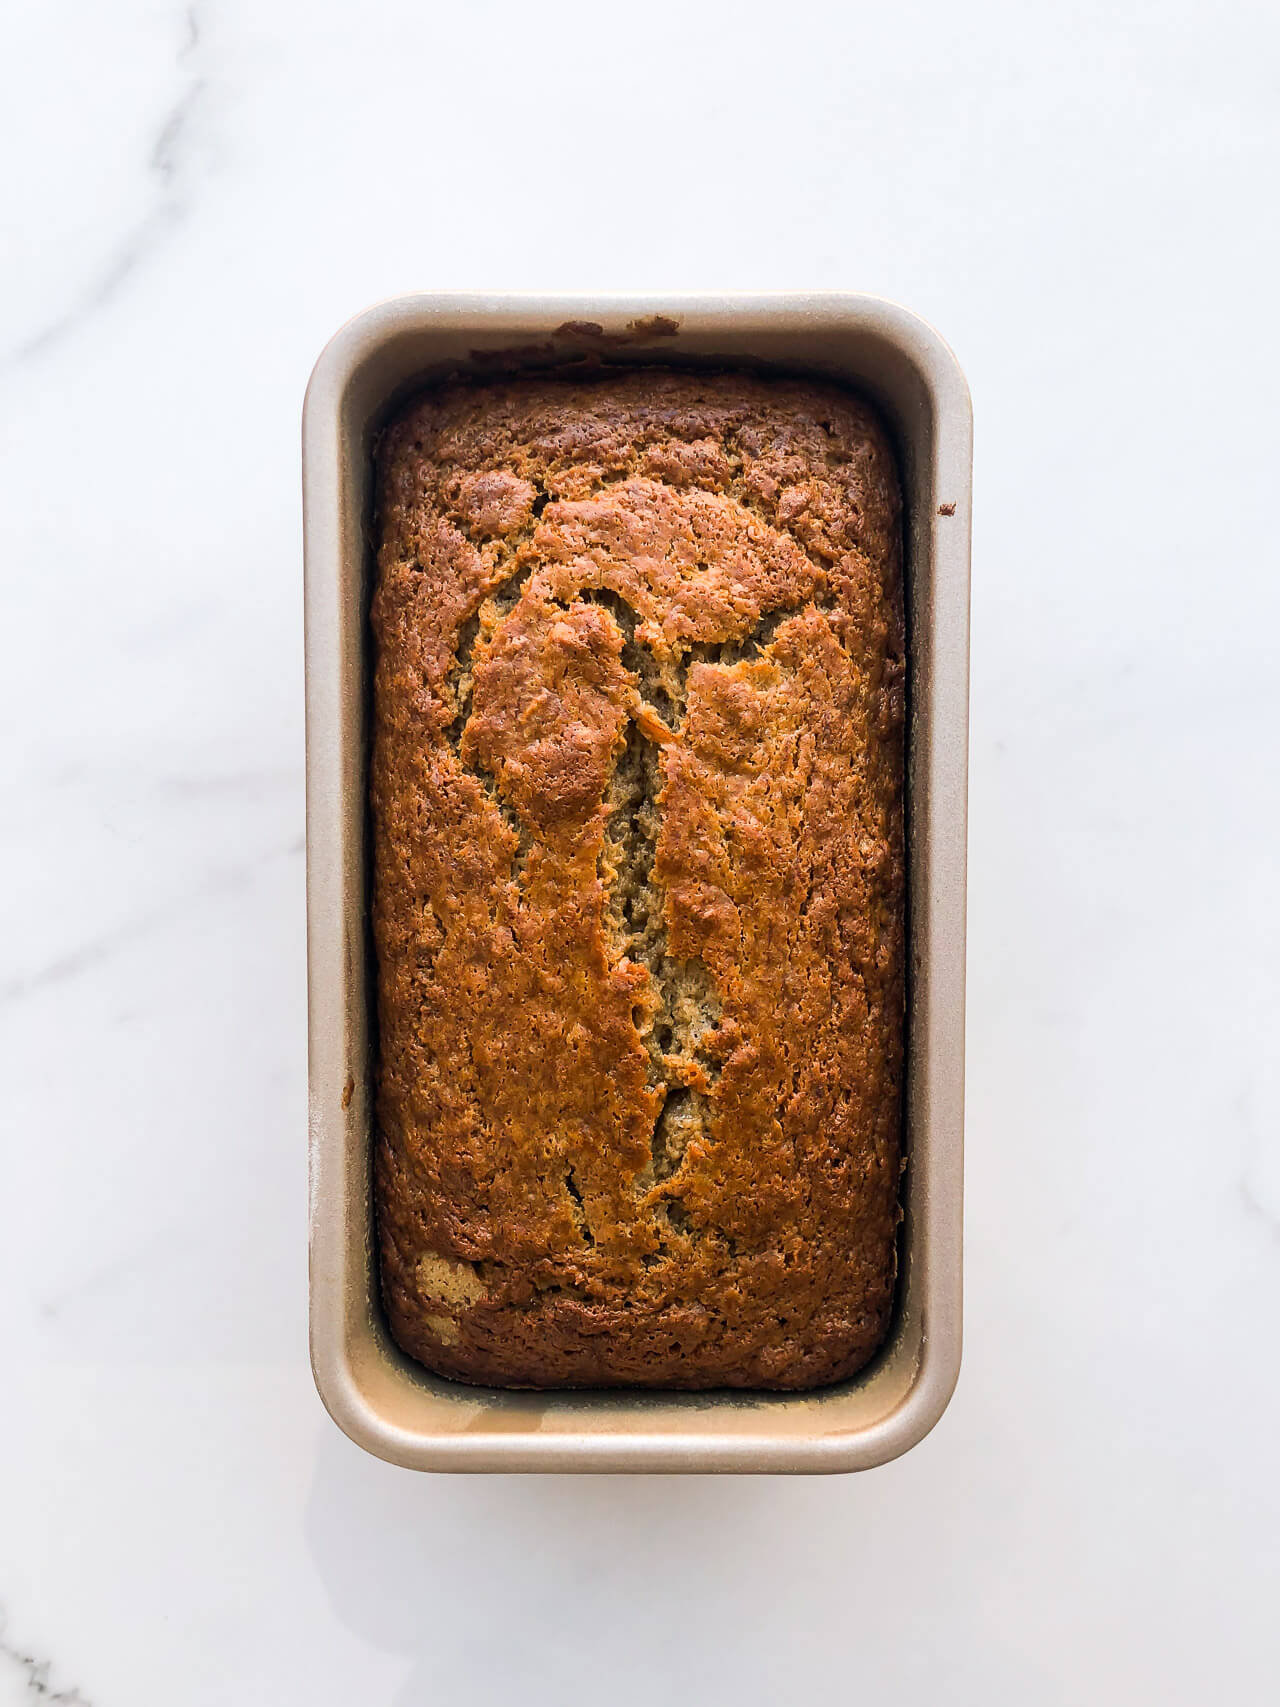 Baked golden brown banana bread in a loaf cake pan